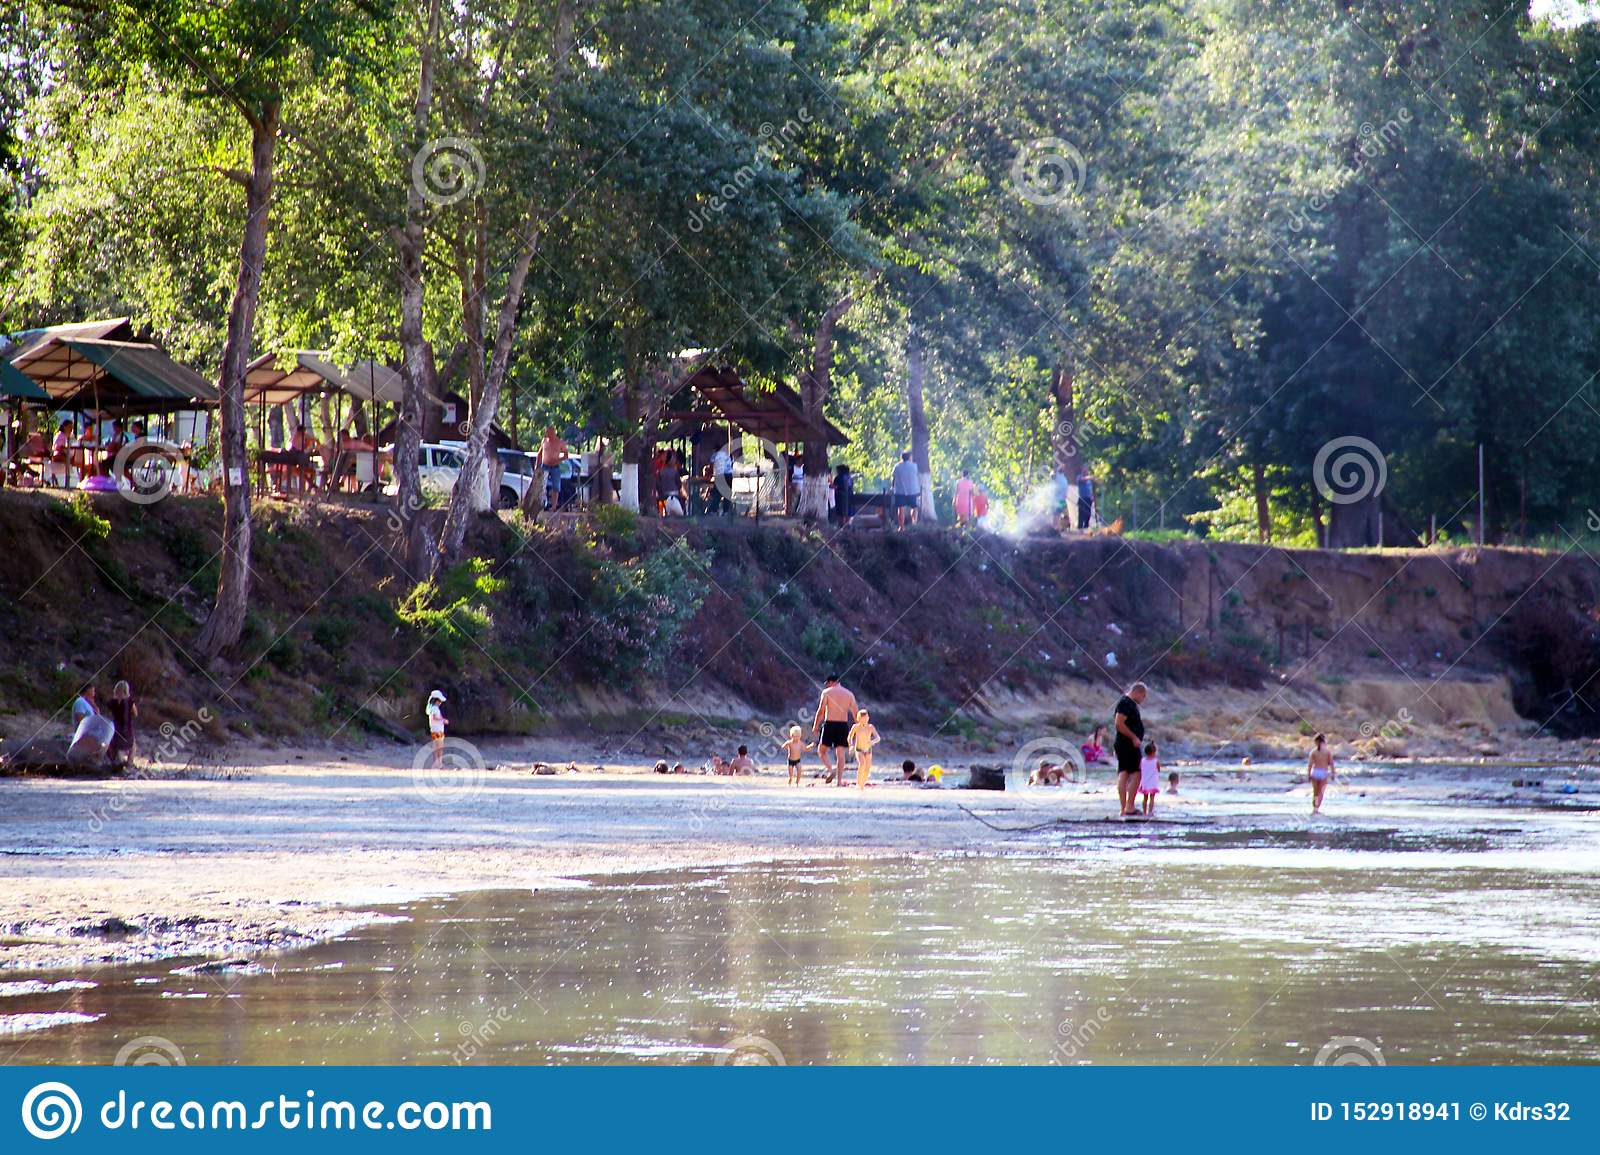 View of the Belaya River and the public park along the river. People relax on the river bank